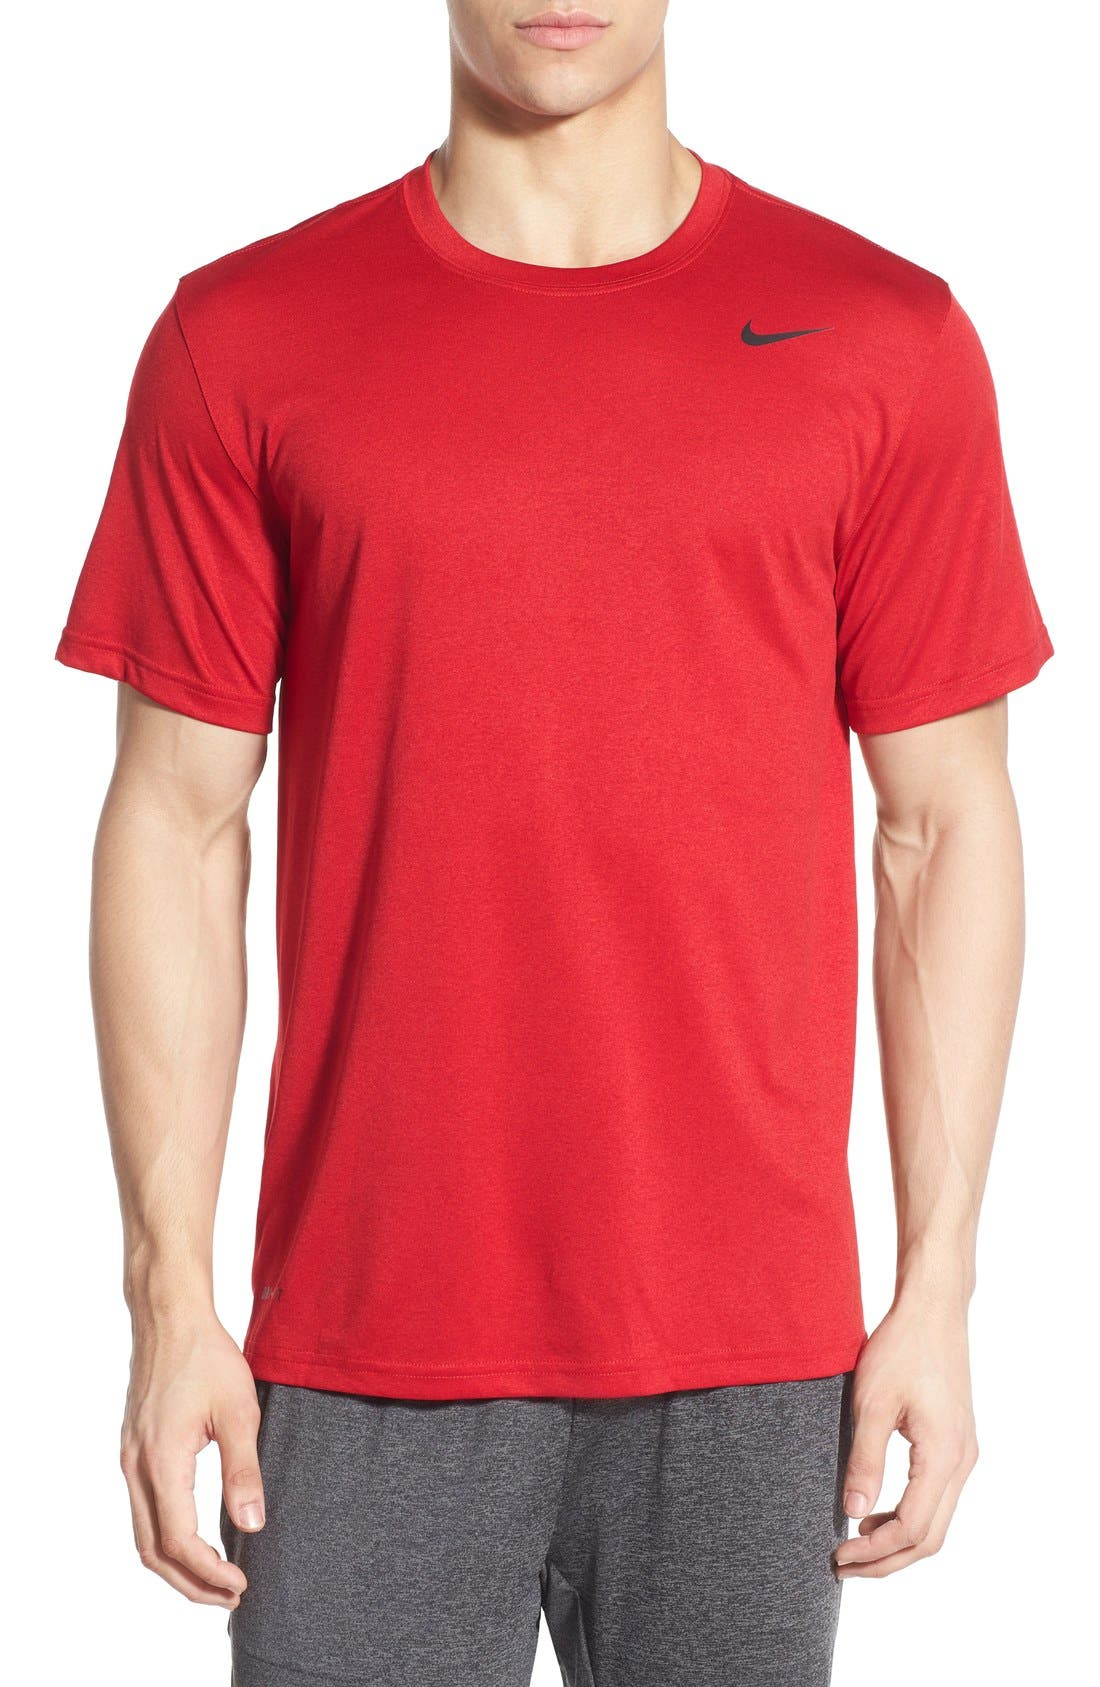 Nike 'Legend 2.0' Dri-FIT Training T-Shirt (Regular Retail Price: $25.00)